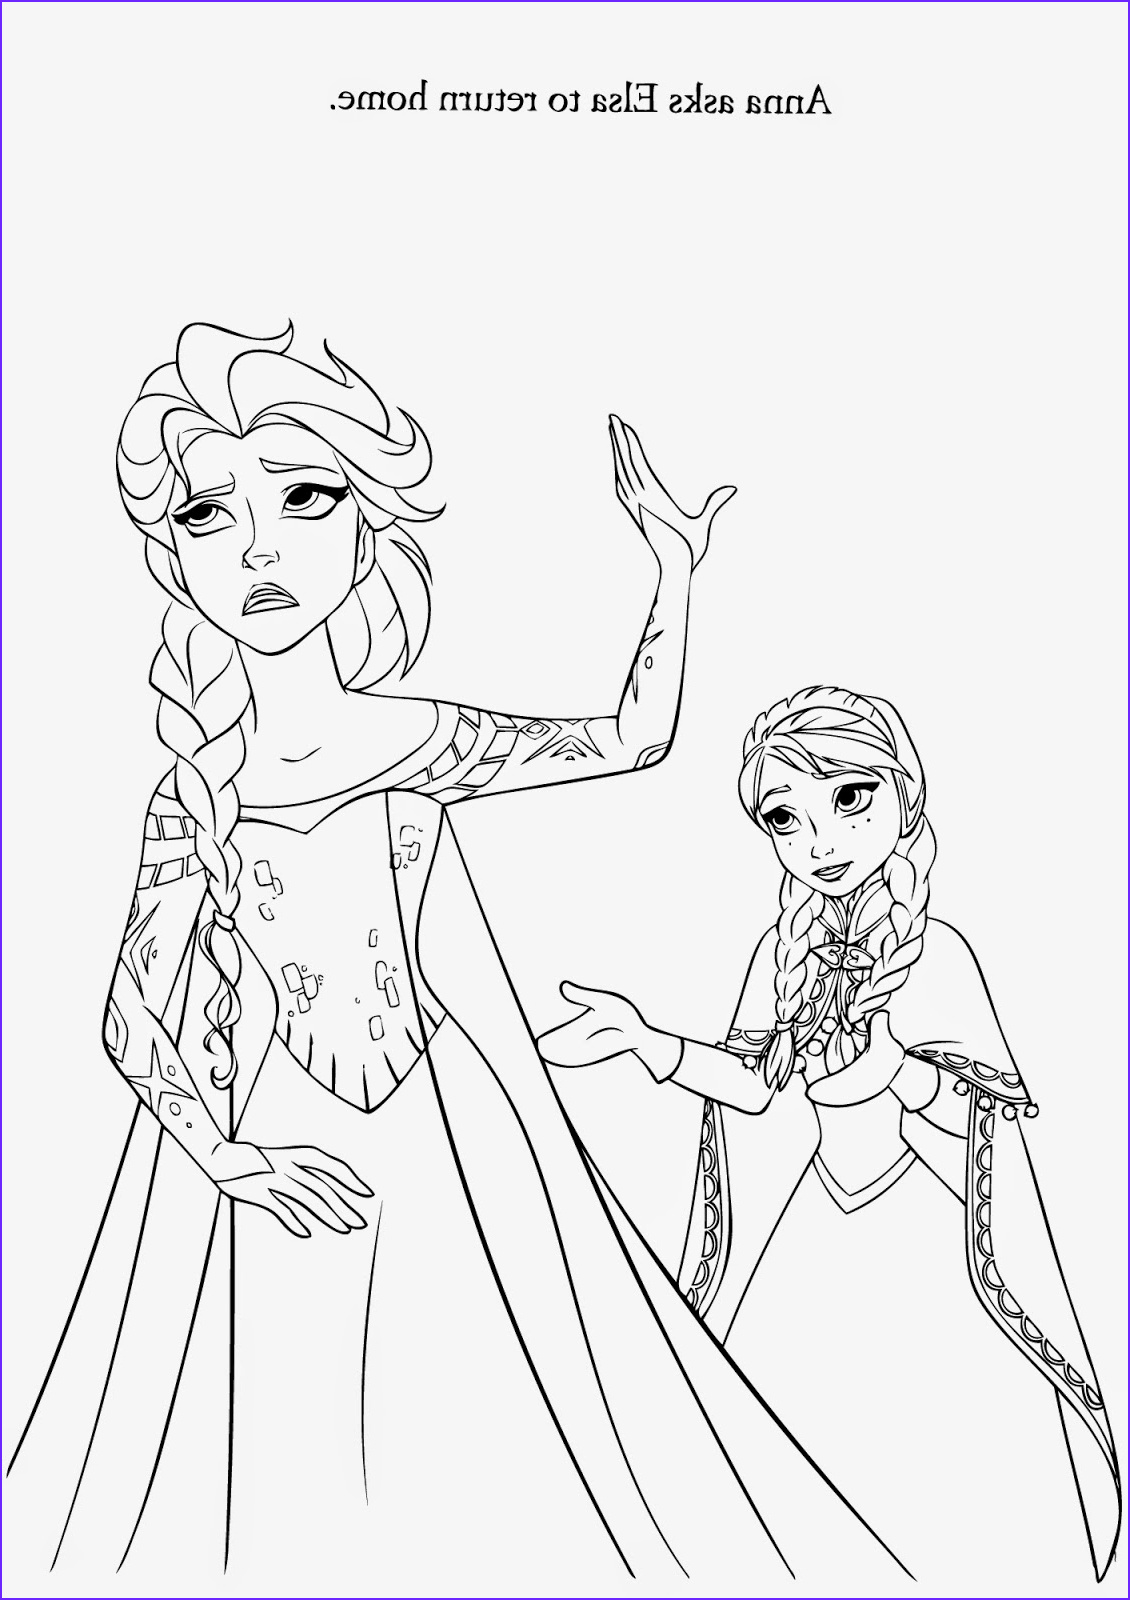 Disney Frozen Coloring Pages Inspirational Collection 15 Beautiful Disney Frozen Coloring Pages Free Instant